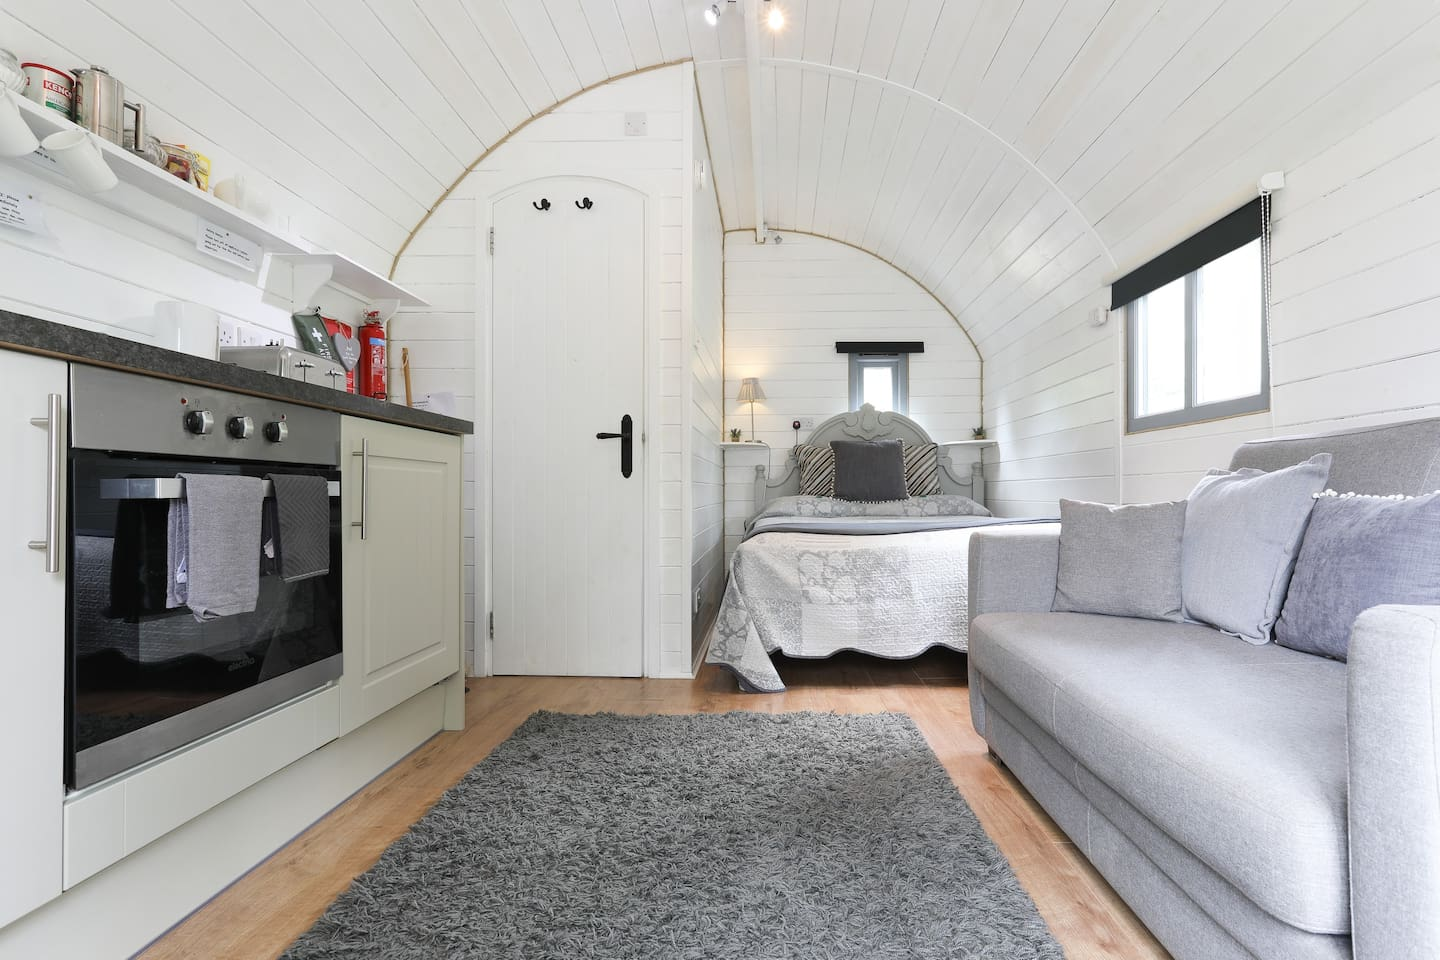 Beautiful space, compact yet  with everything you need in this entire pod, bathroom, bedroom, kitchen, dining and seating area  all to yourself.